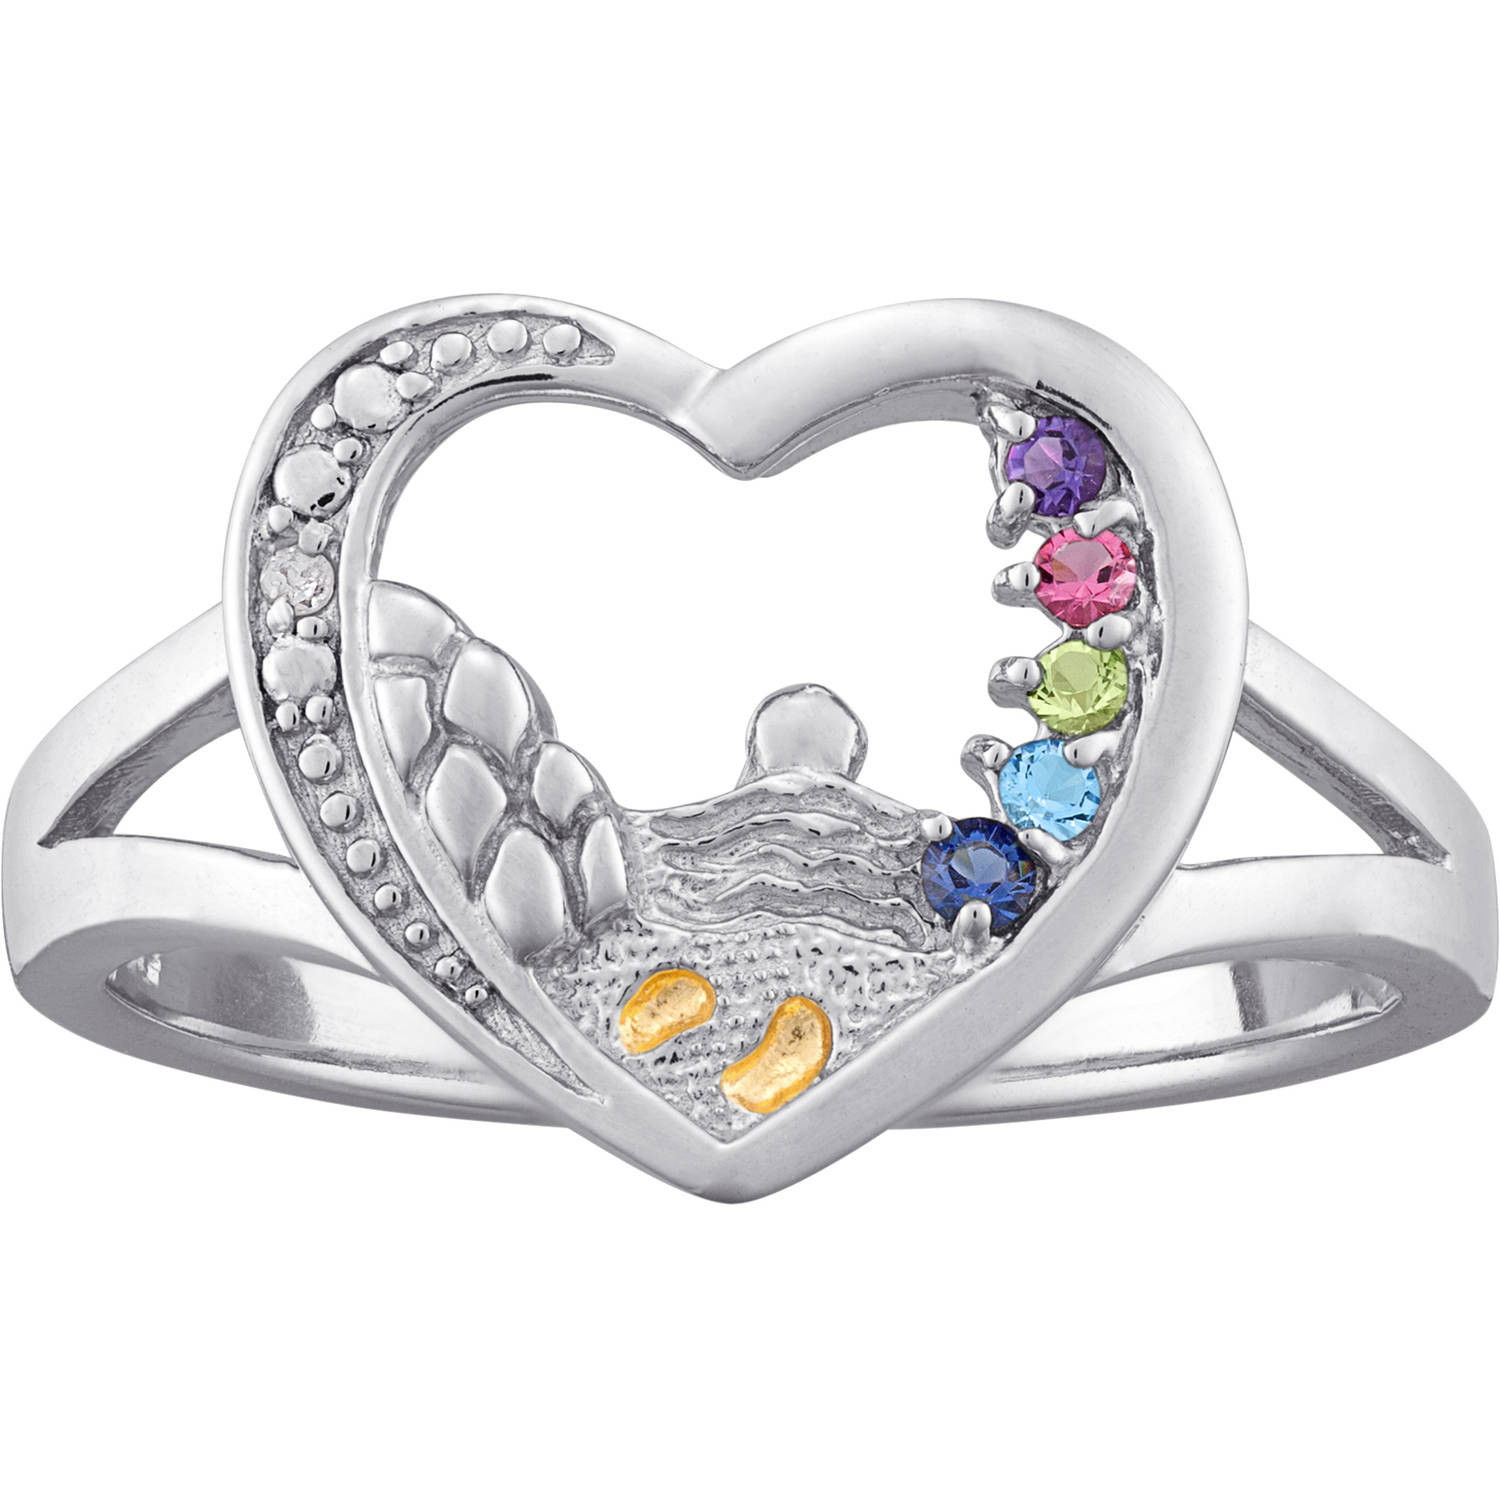 martin jewellers silver footprint gear baby ring claddagh rings sterling solid product